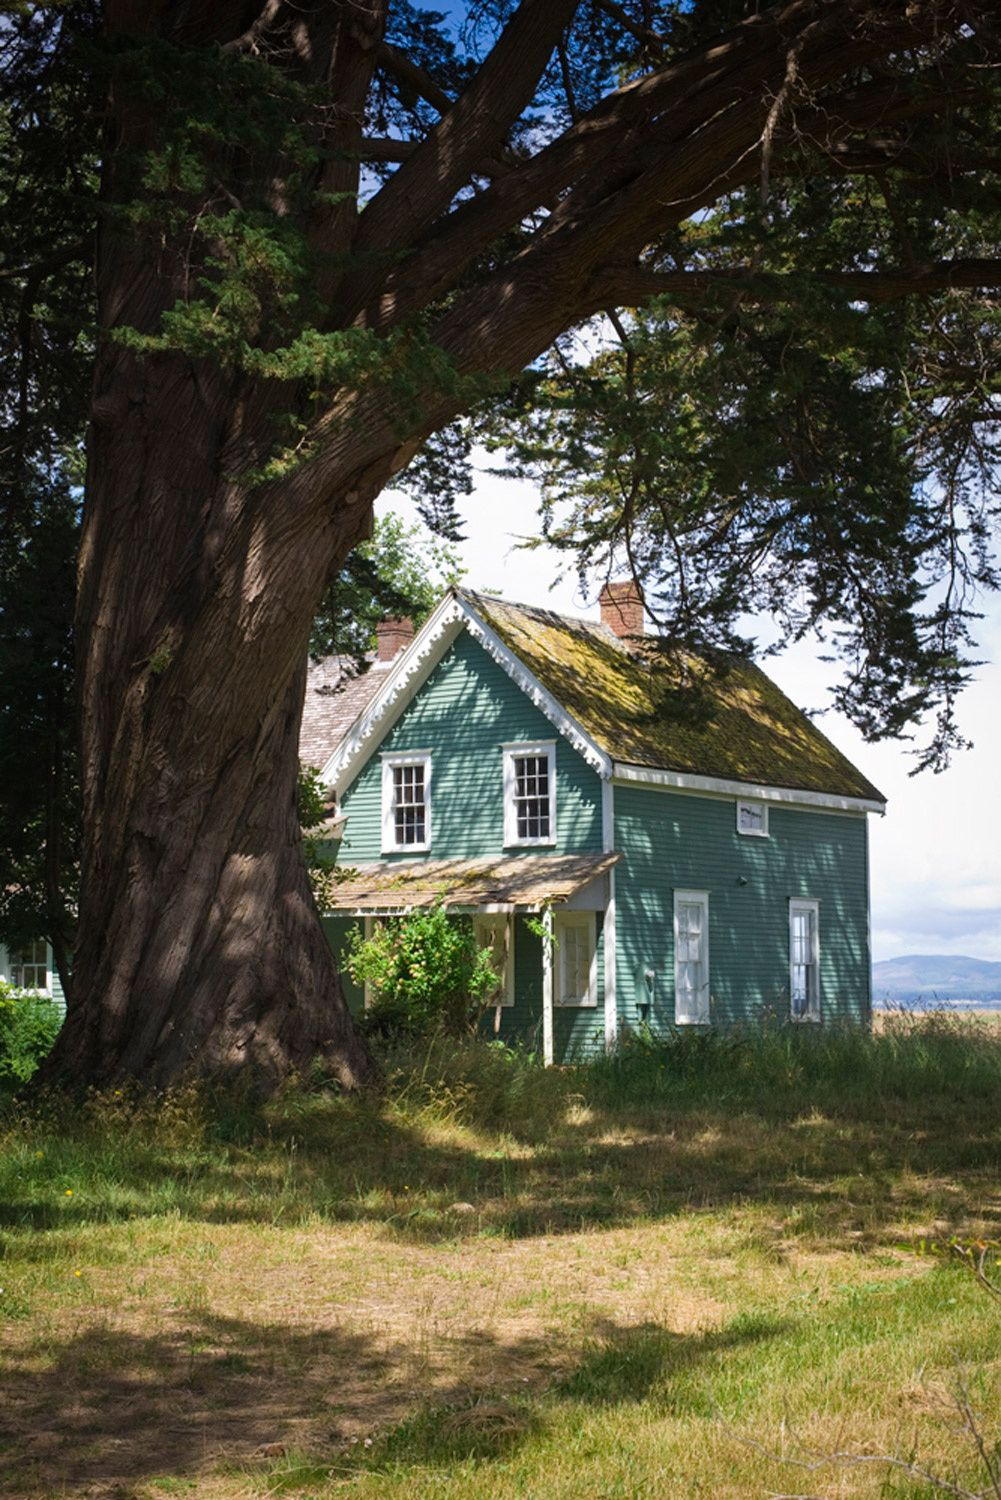 Big nice farm houses of houses are the new old - Find This Pin And More On Old Farm Houses Barns Cottages By Ctrywd